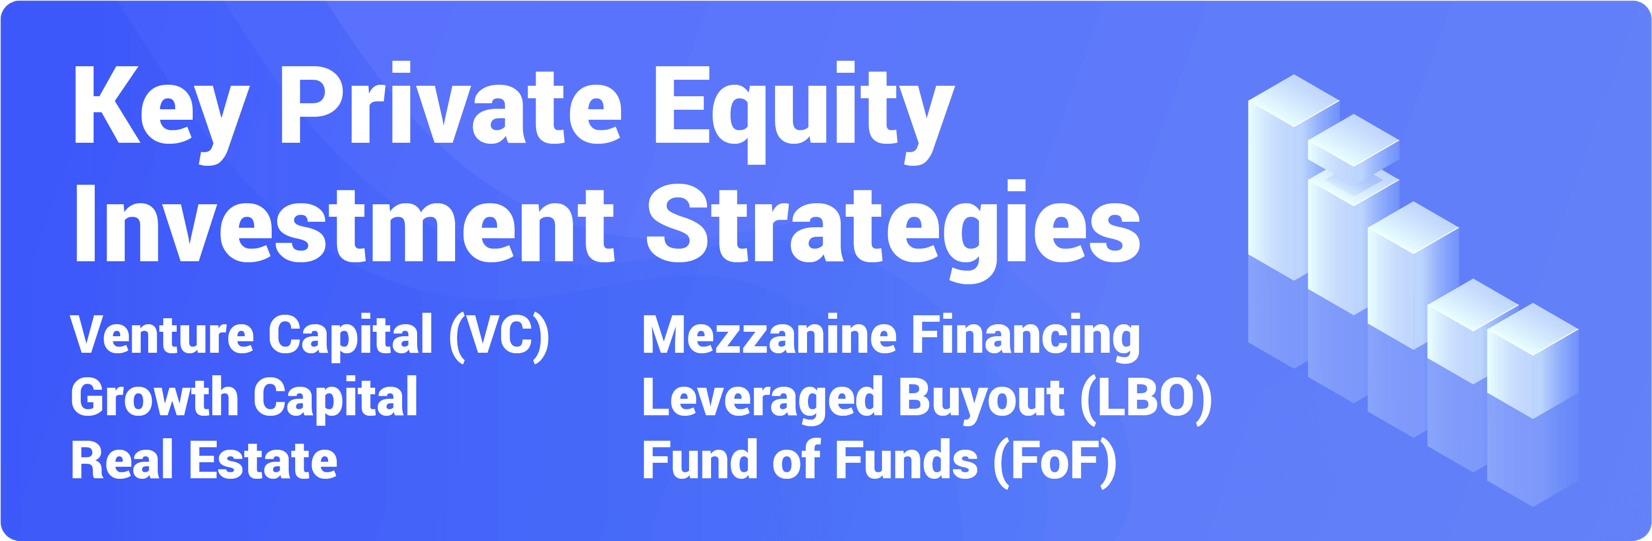 Private Equity Investment Strategies